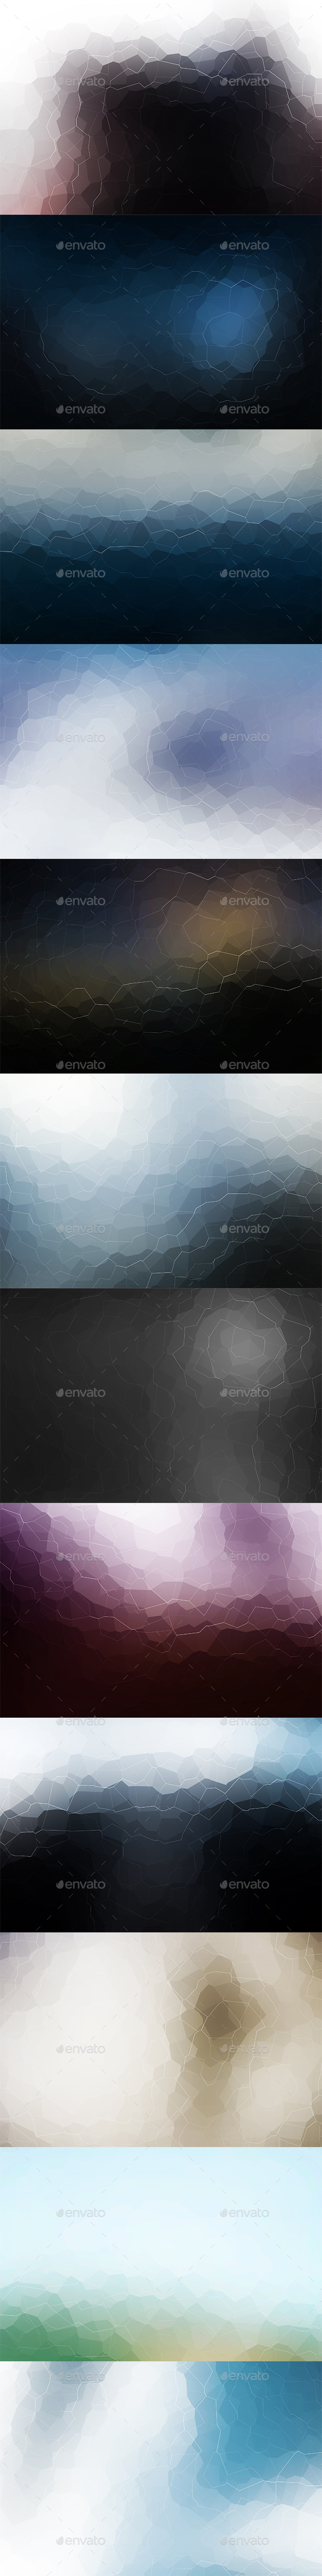 Crystallized Backgrounds Vol6 - Abstract Backgrounds